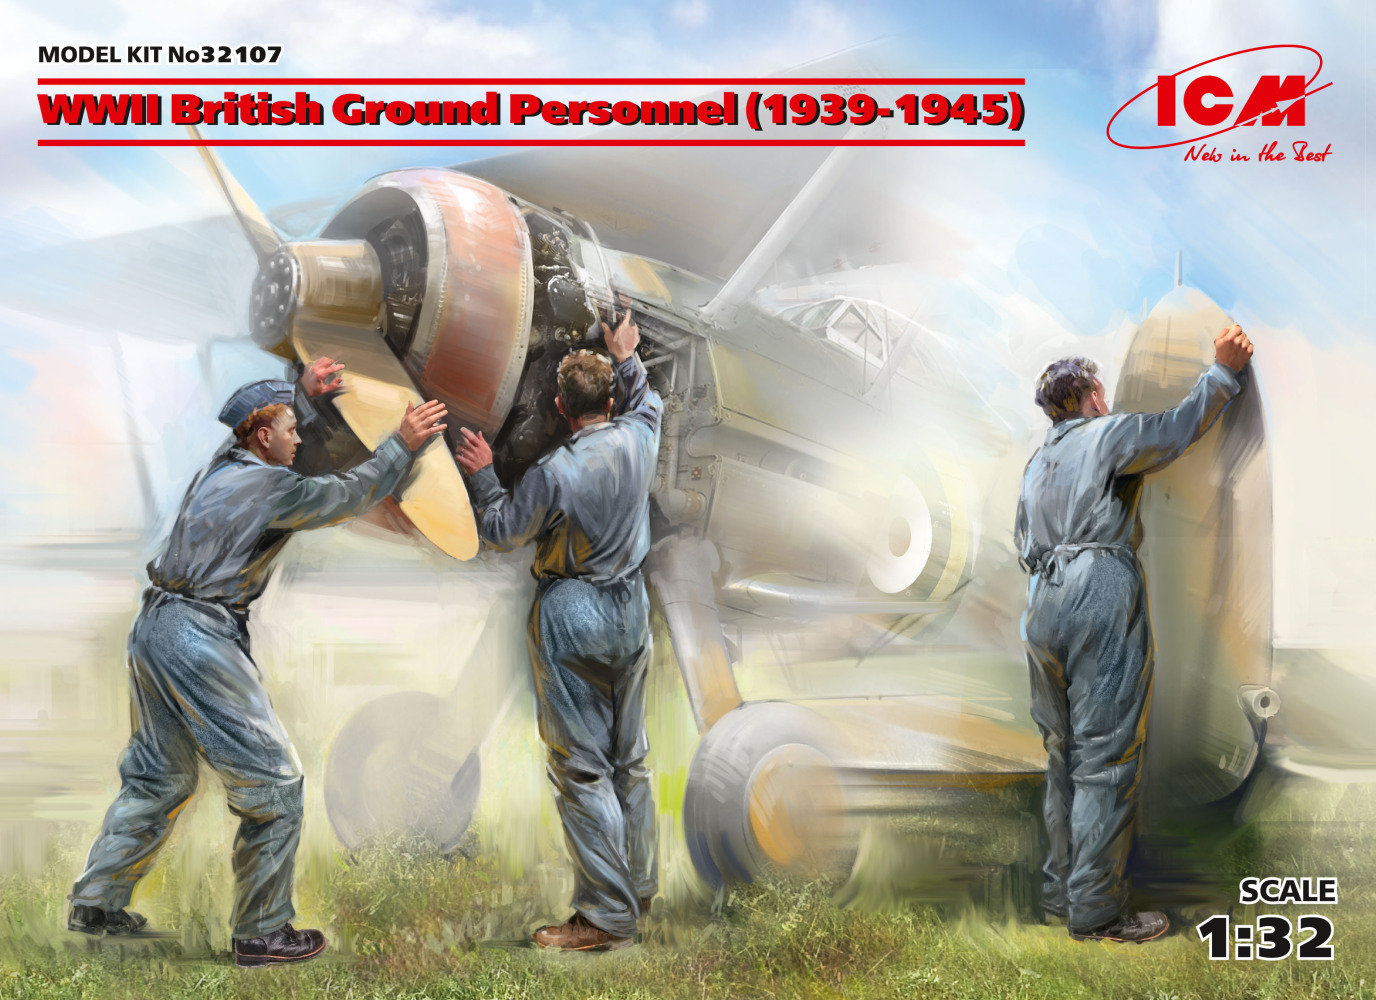 WWII British Ground Personnel (1939-1945) (3 figures)